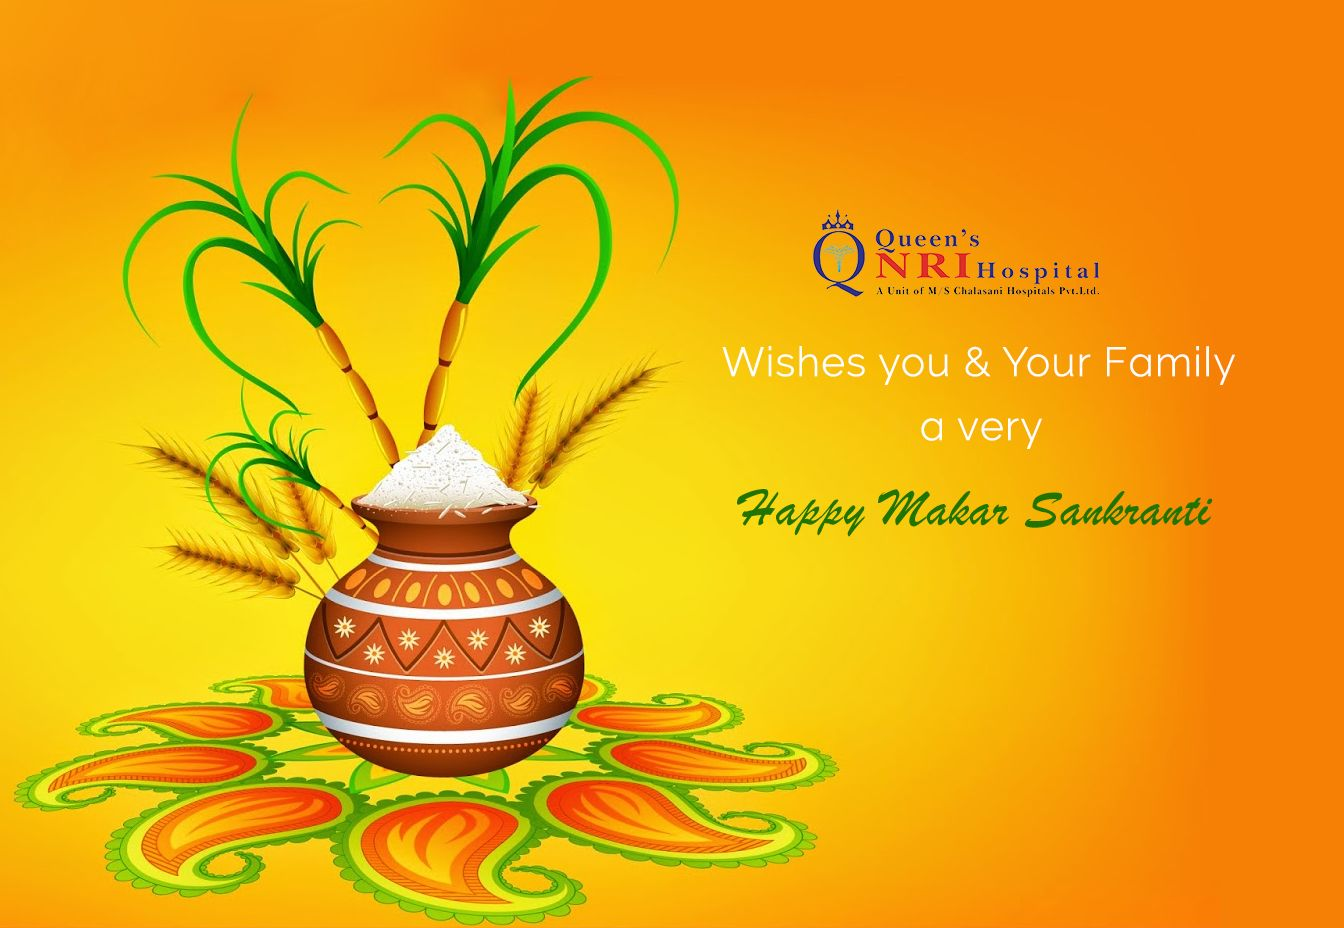 Queen's NRI Hospital wishes you all A Very Happy Makar